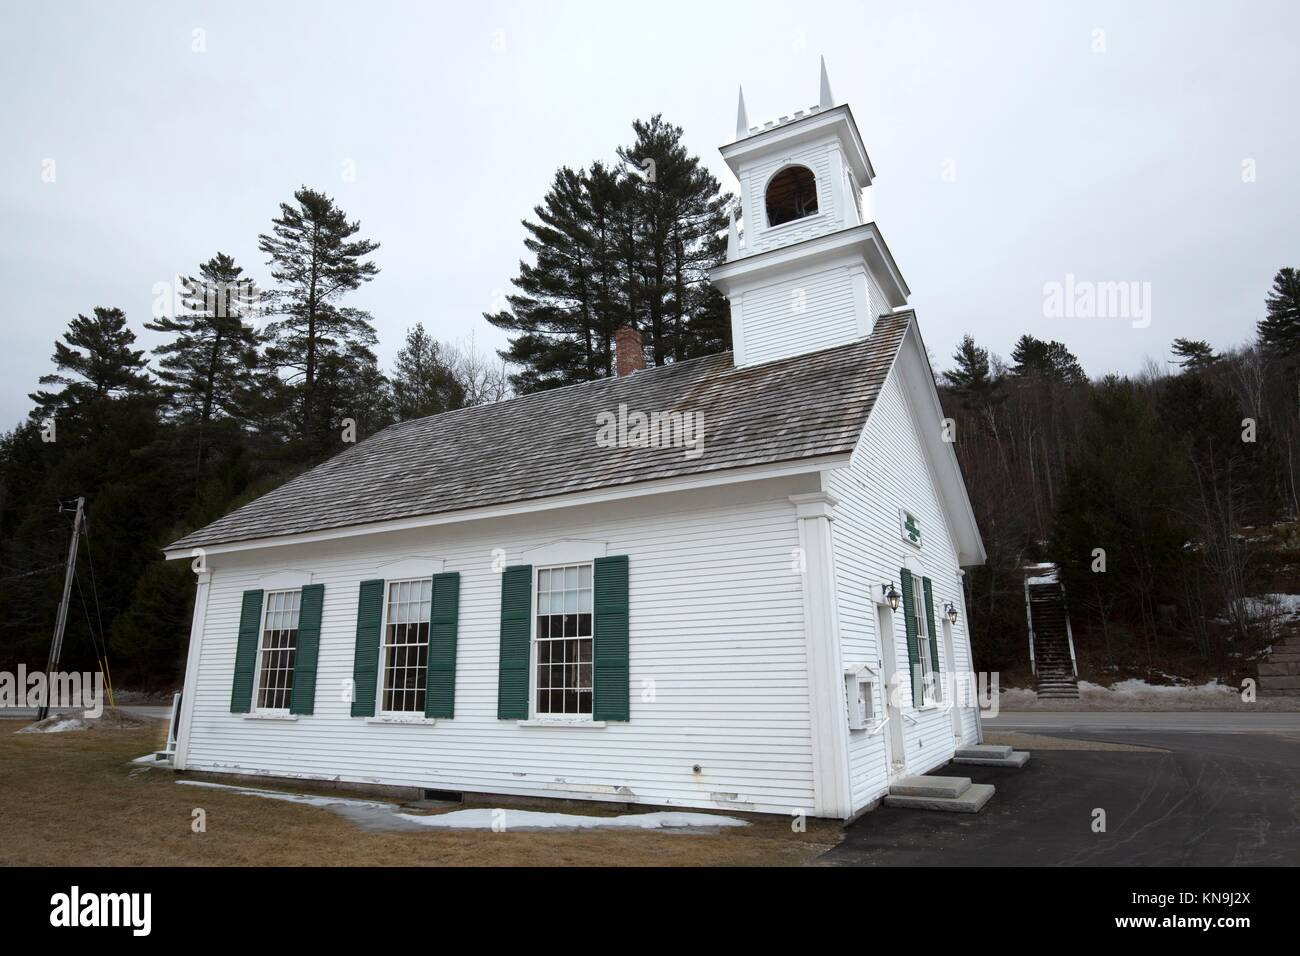 Historic Stark Union Church in Stark, New Hampshire, dating to the mid-19th century. - Stock Image